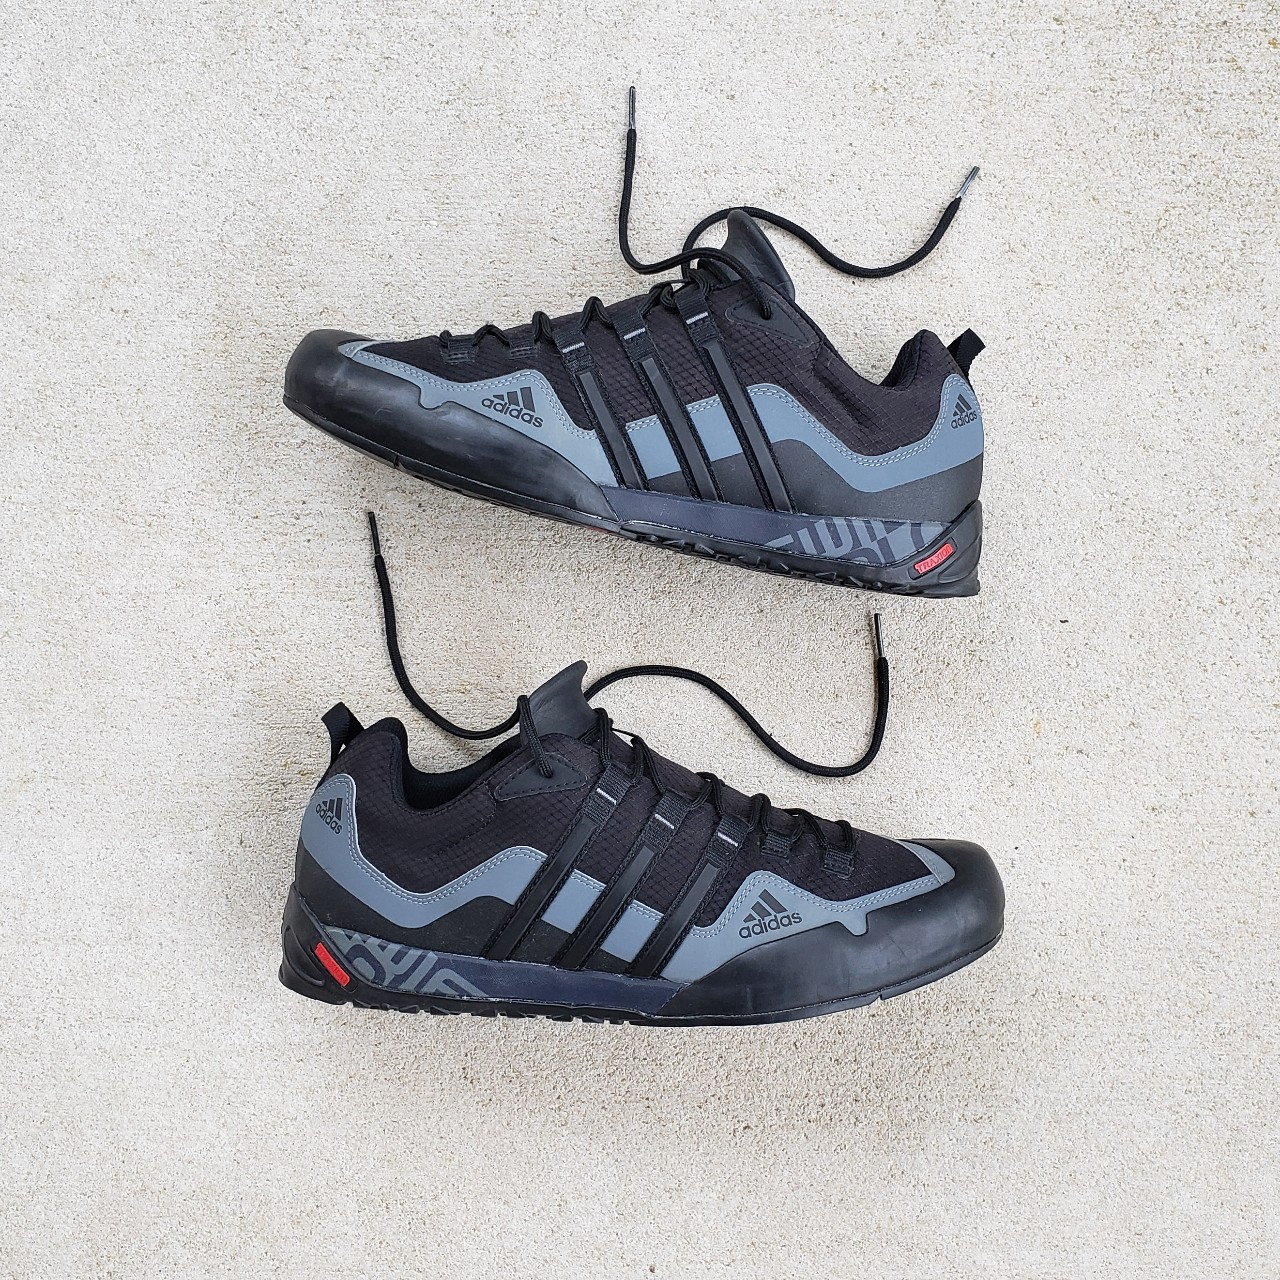 best authentic how to buy fast delivery ADIDAS TERREX SWIFT SOLO Lightweight and... - Depop